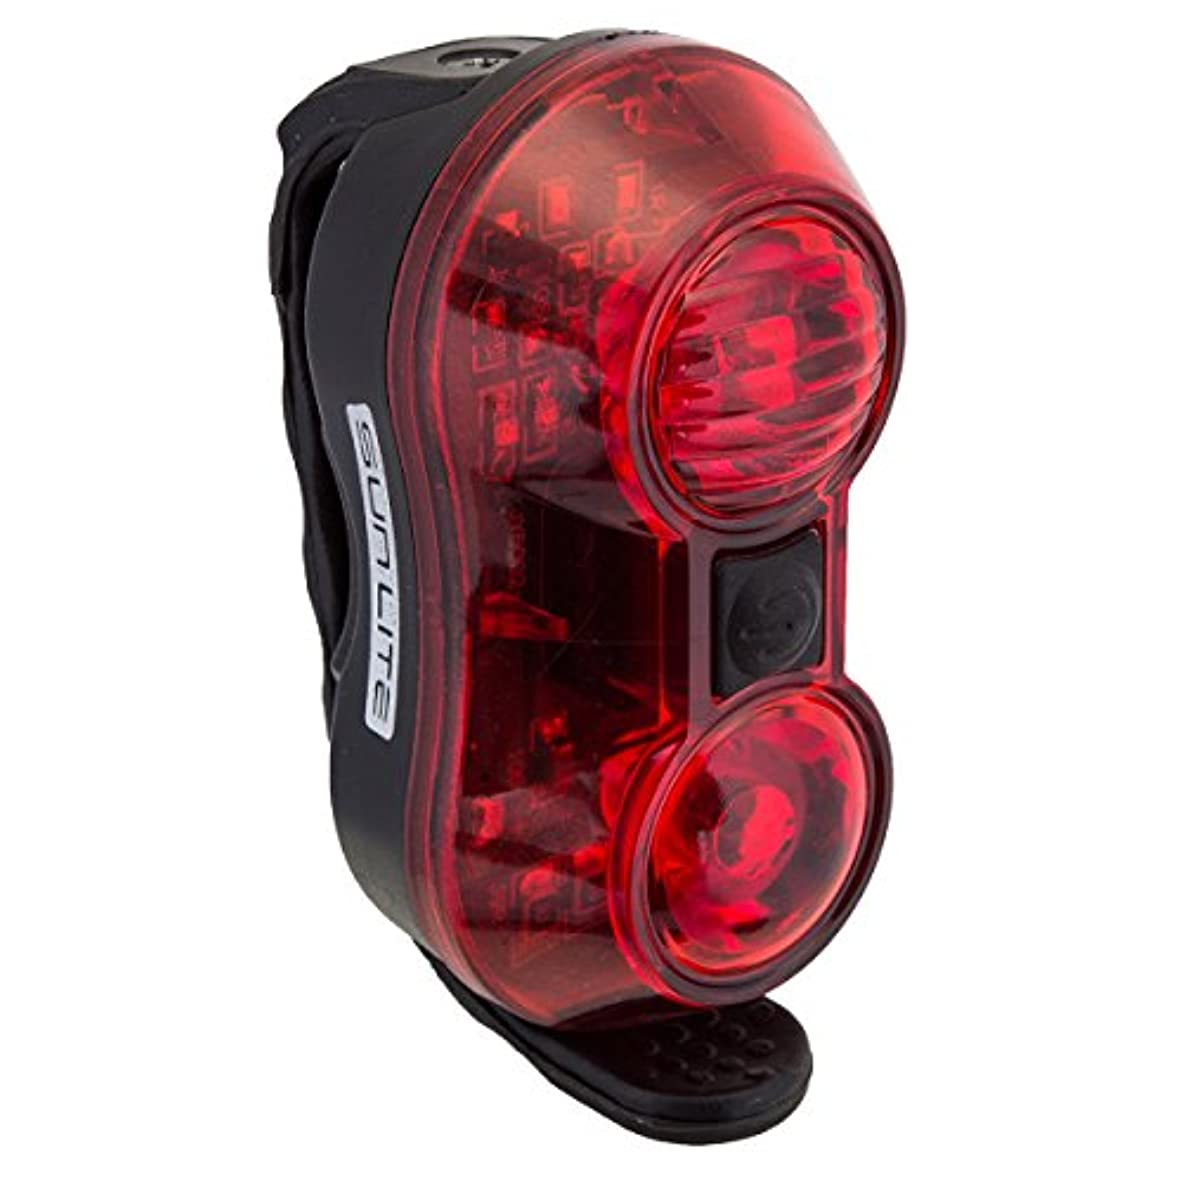 突っ込むジュース物質Sunlite TL-L215 USB Tail Light by Sunlite